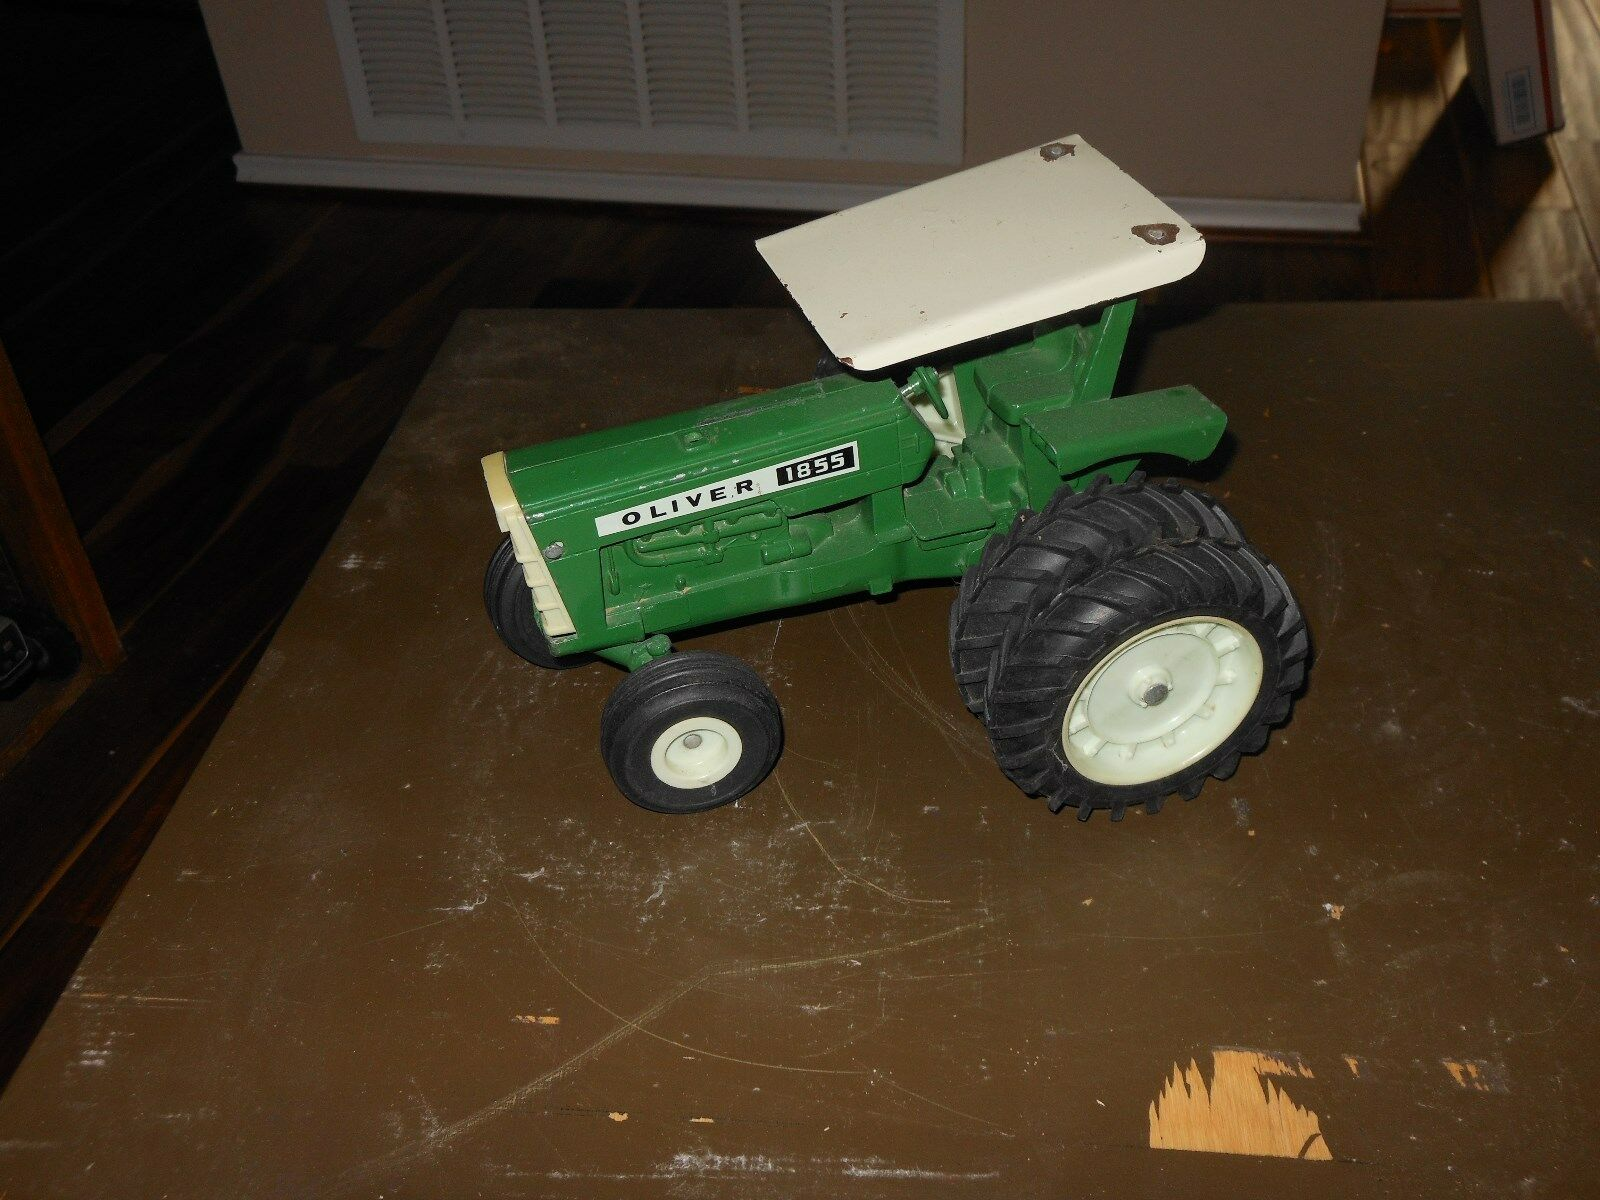 Oliver 1855 toy tractor  (bianca, Moline)   duals and ROPS